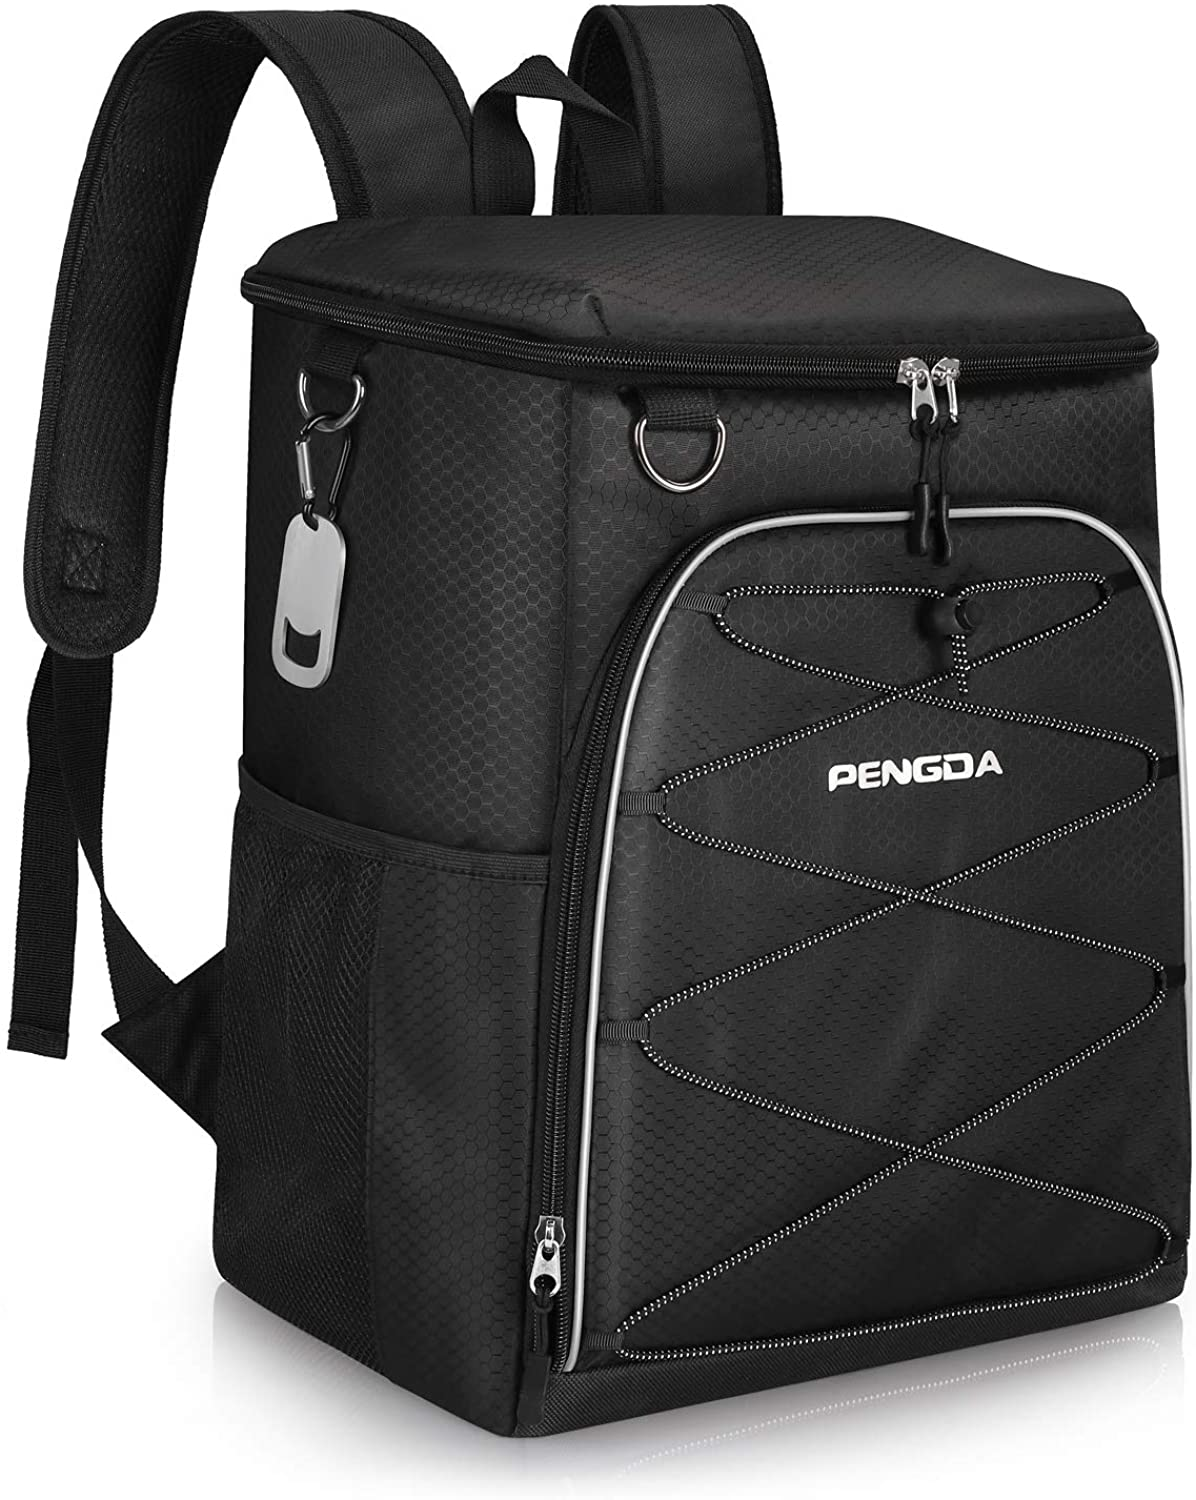 PENGDA Insulated & Leakproof Soft Backpack Cooler